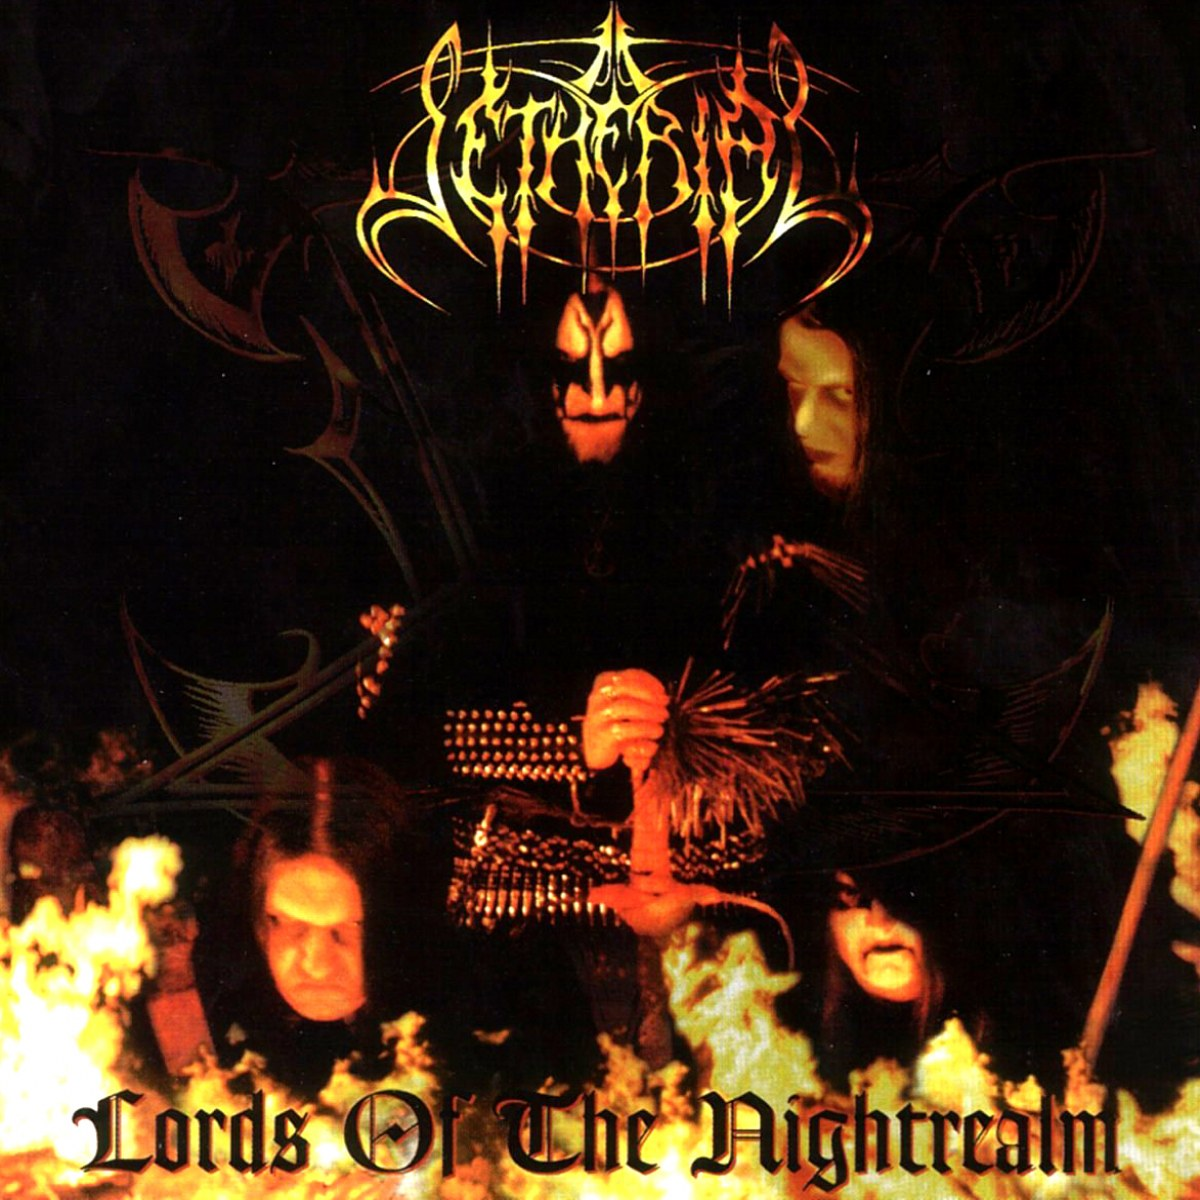 Review for Setherial - Lords of the Nightrealm